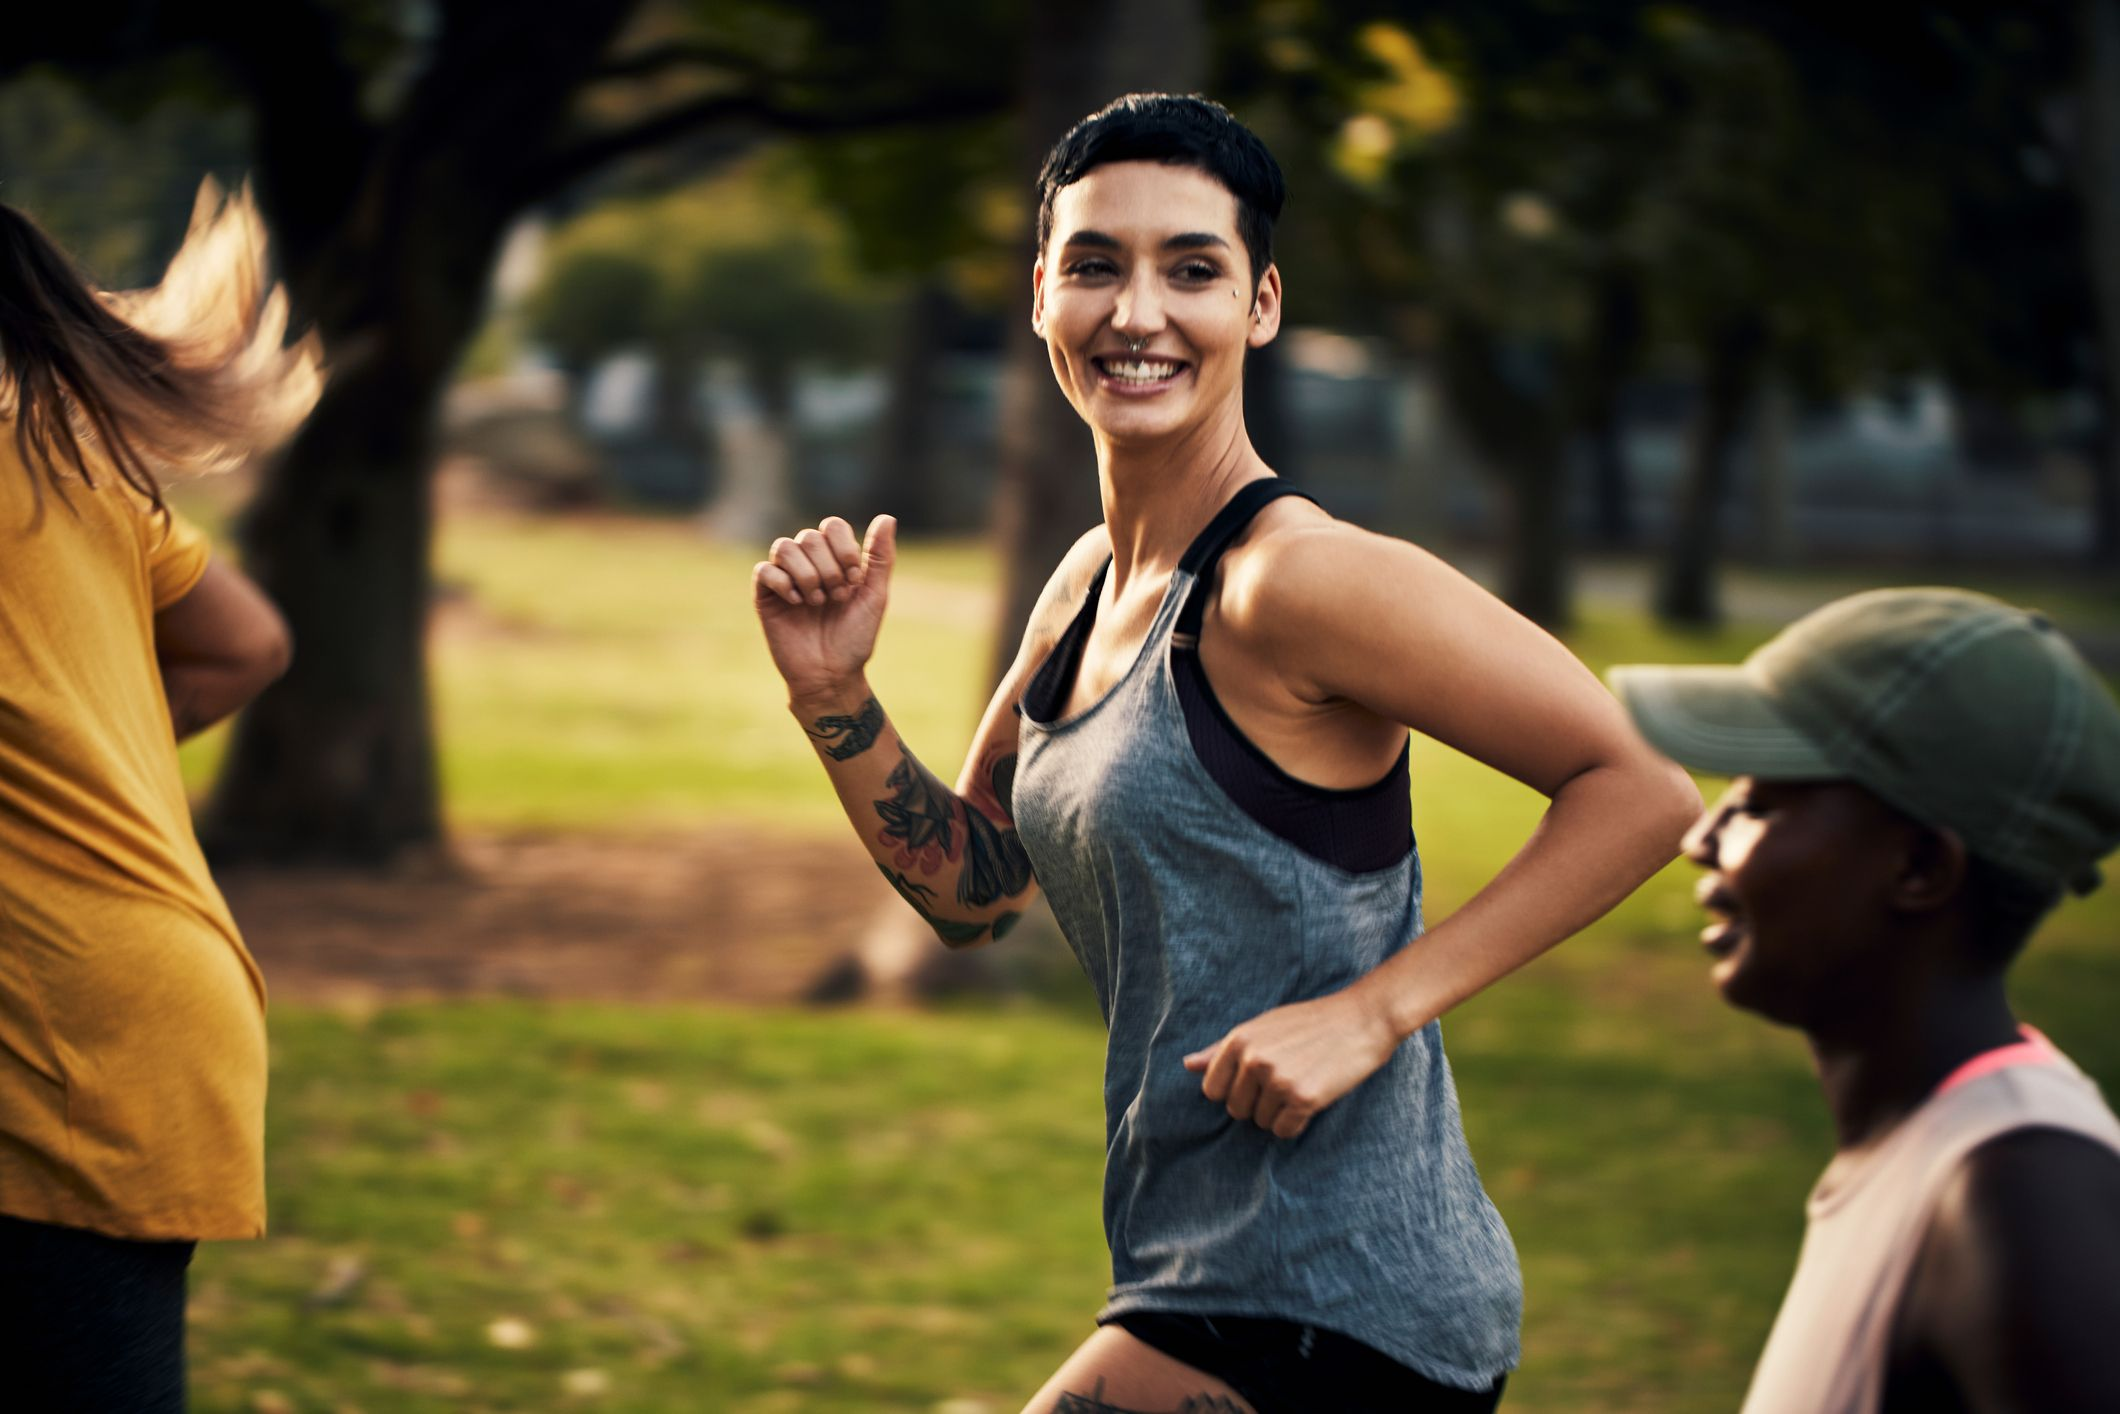 5 Very Convincing Reasons Why You Need a Running Coach